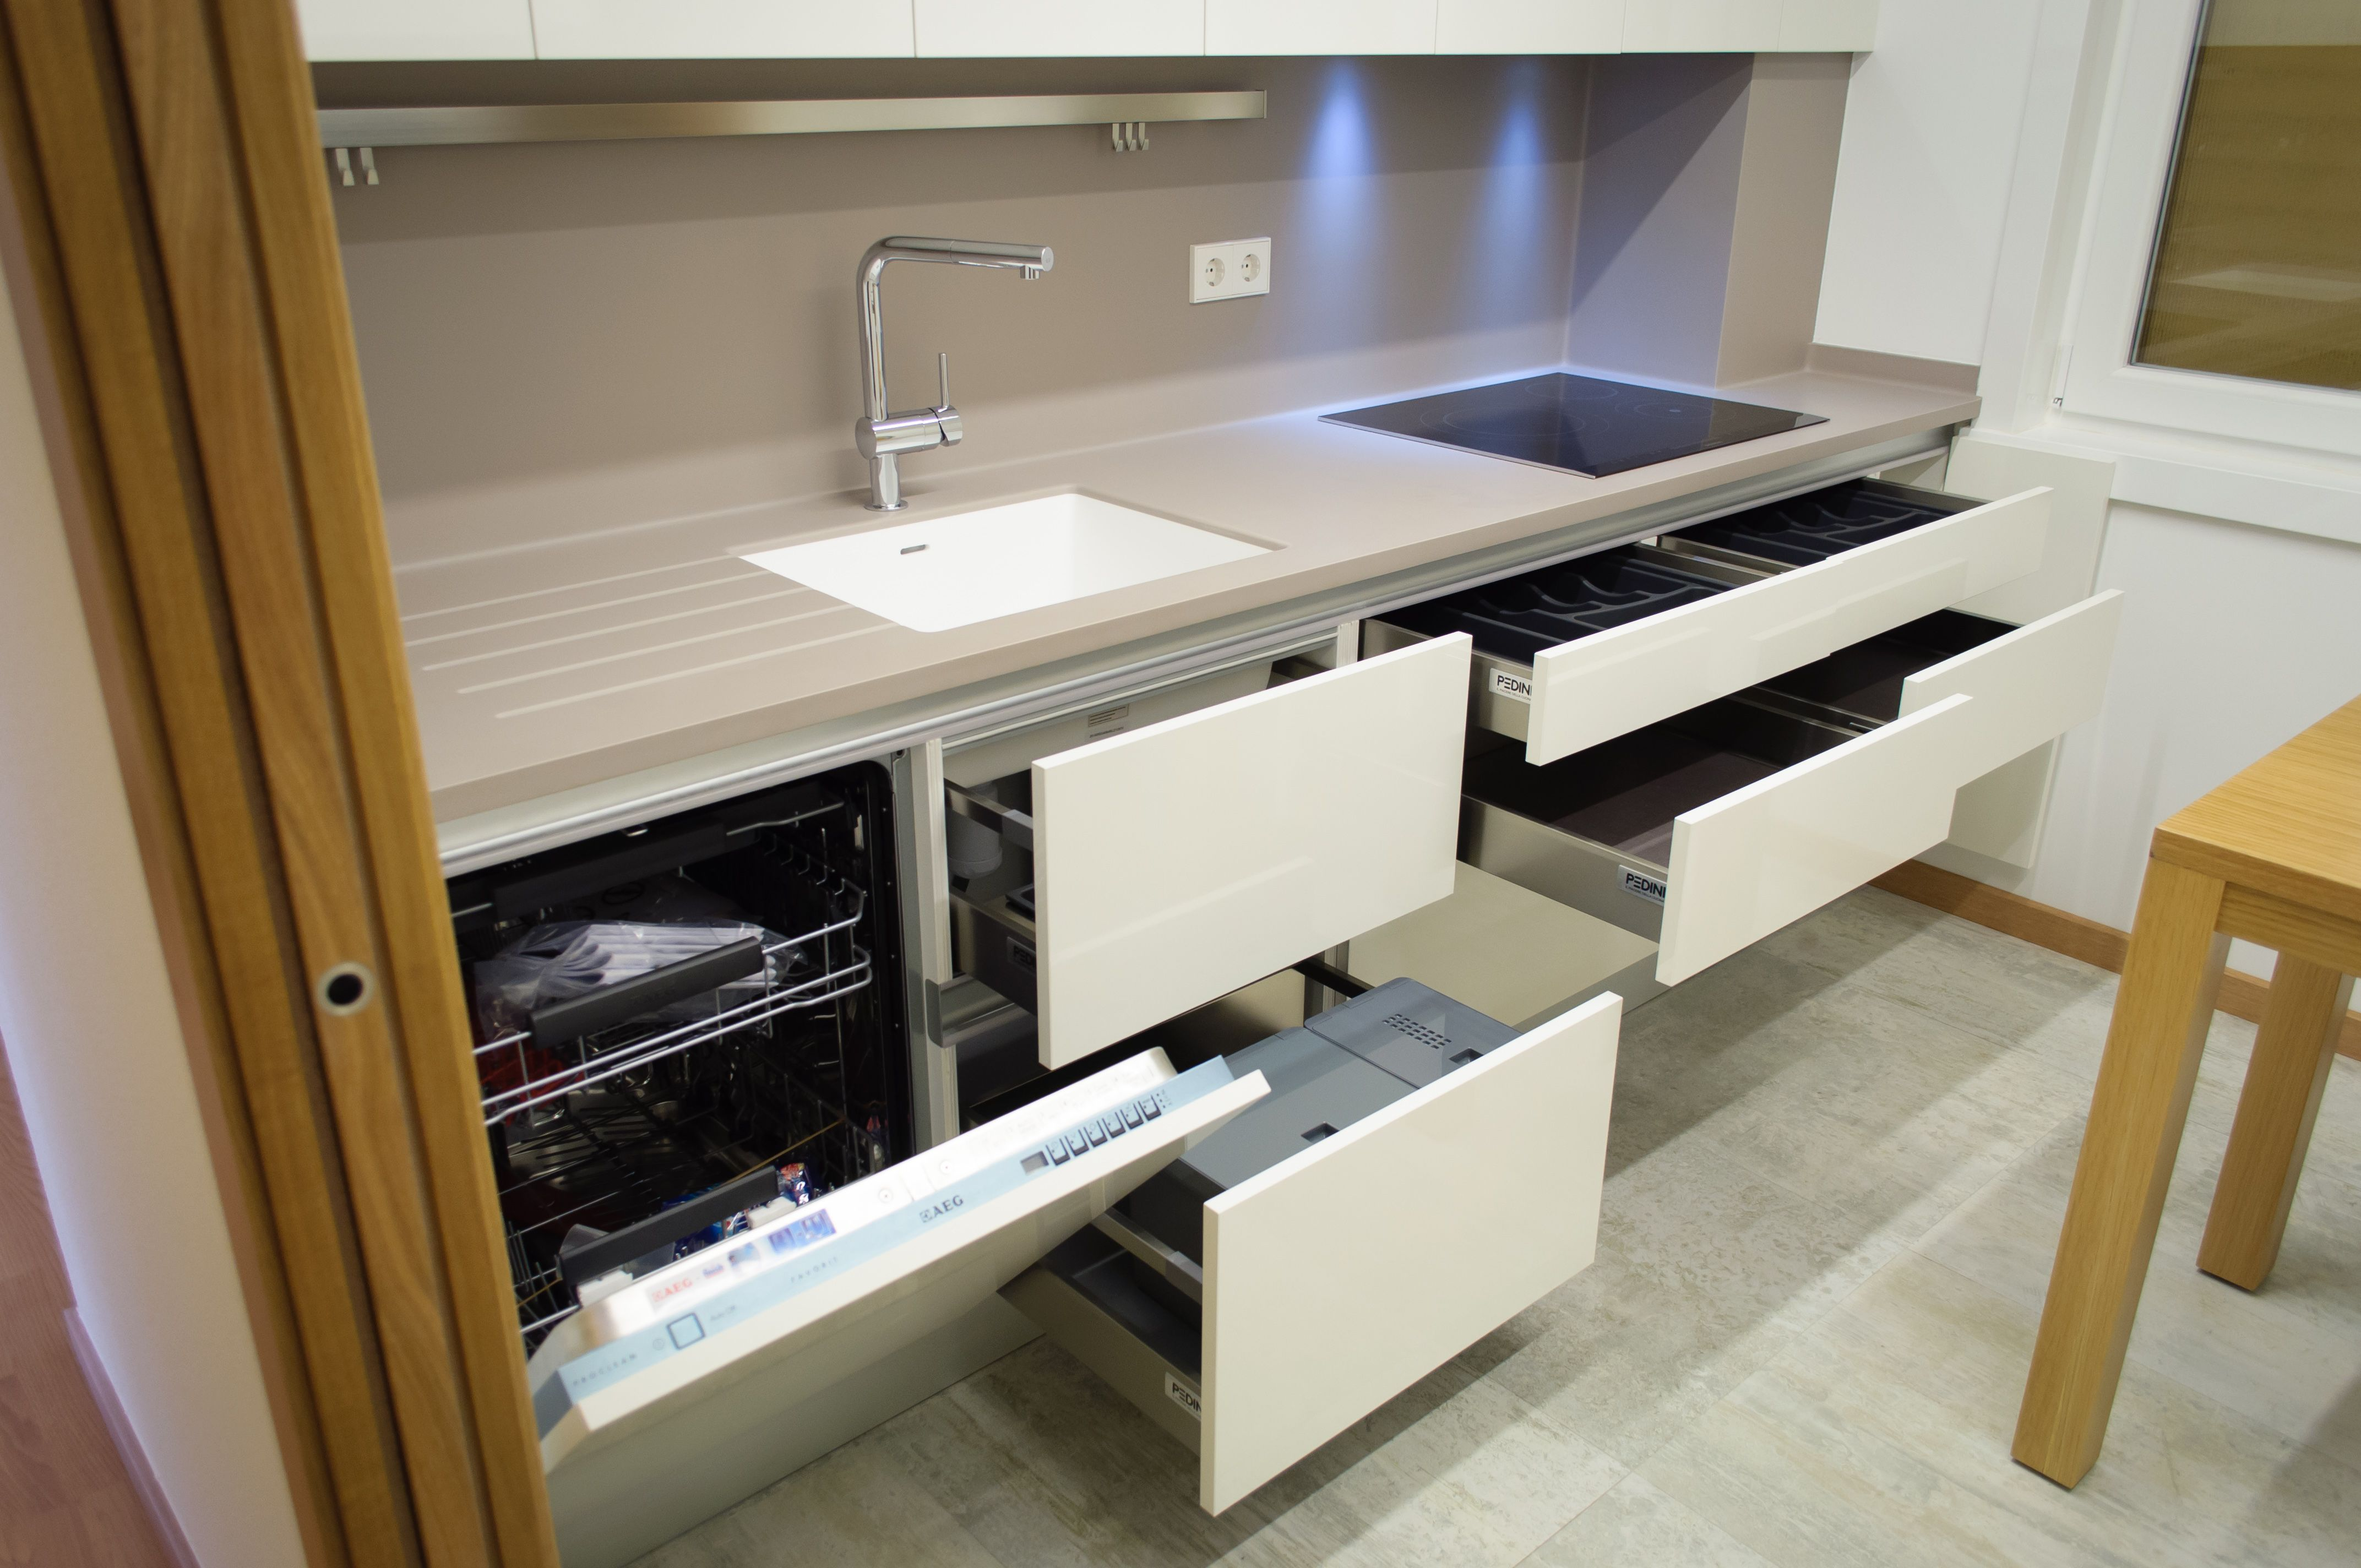 Salones Modulares Cocina Modelo System Collection Laminado En Blanco Brillo